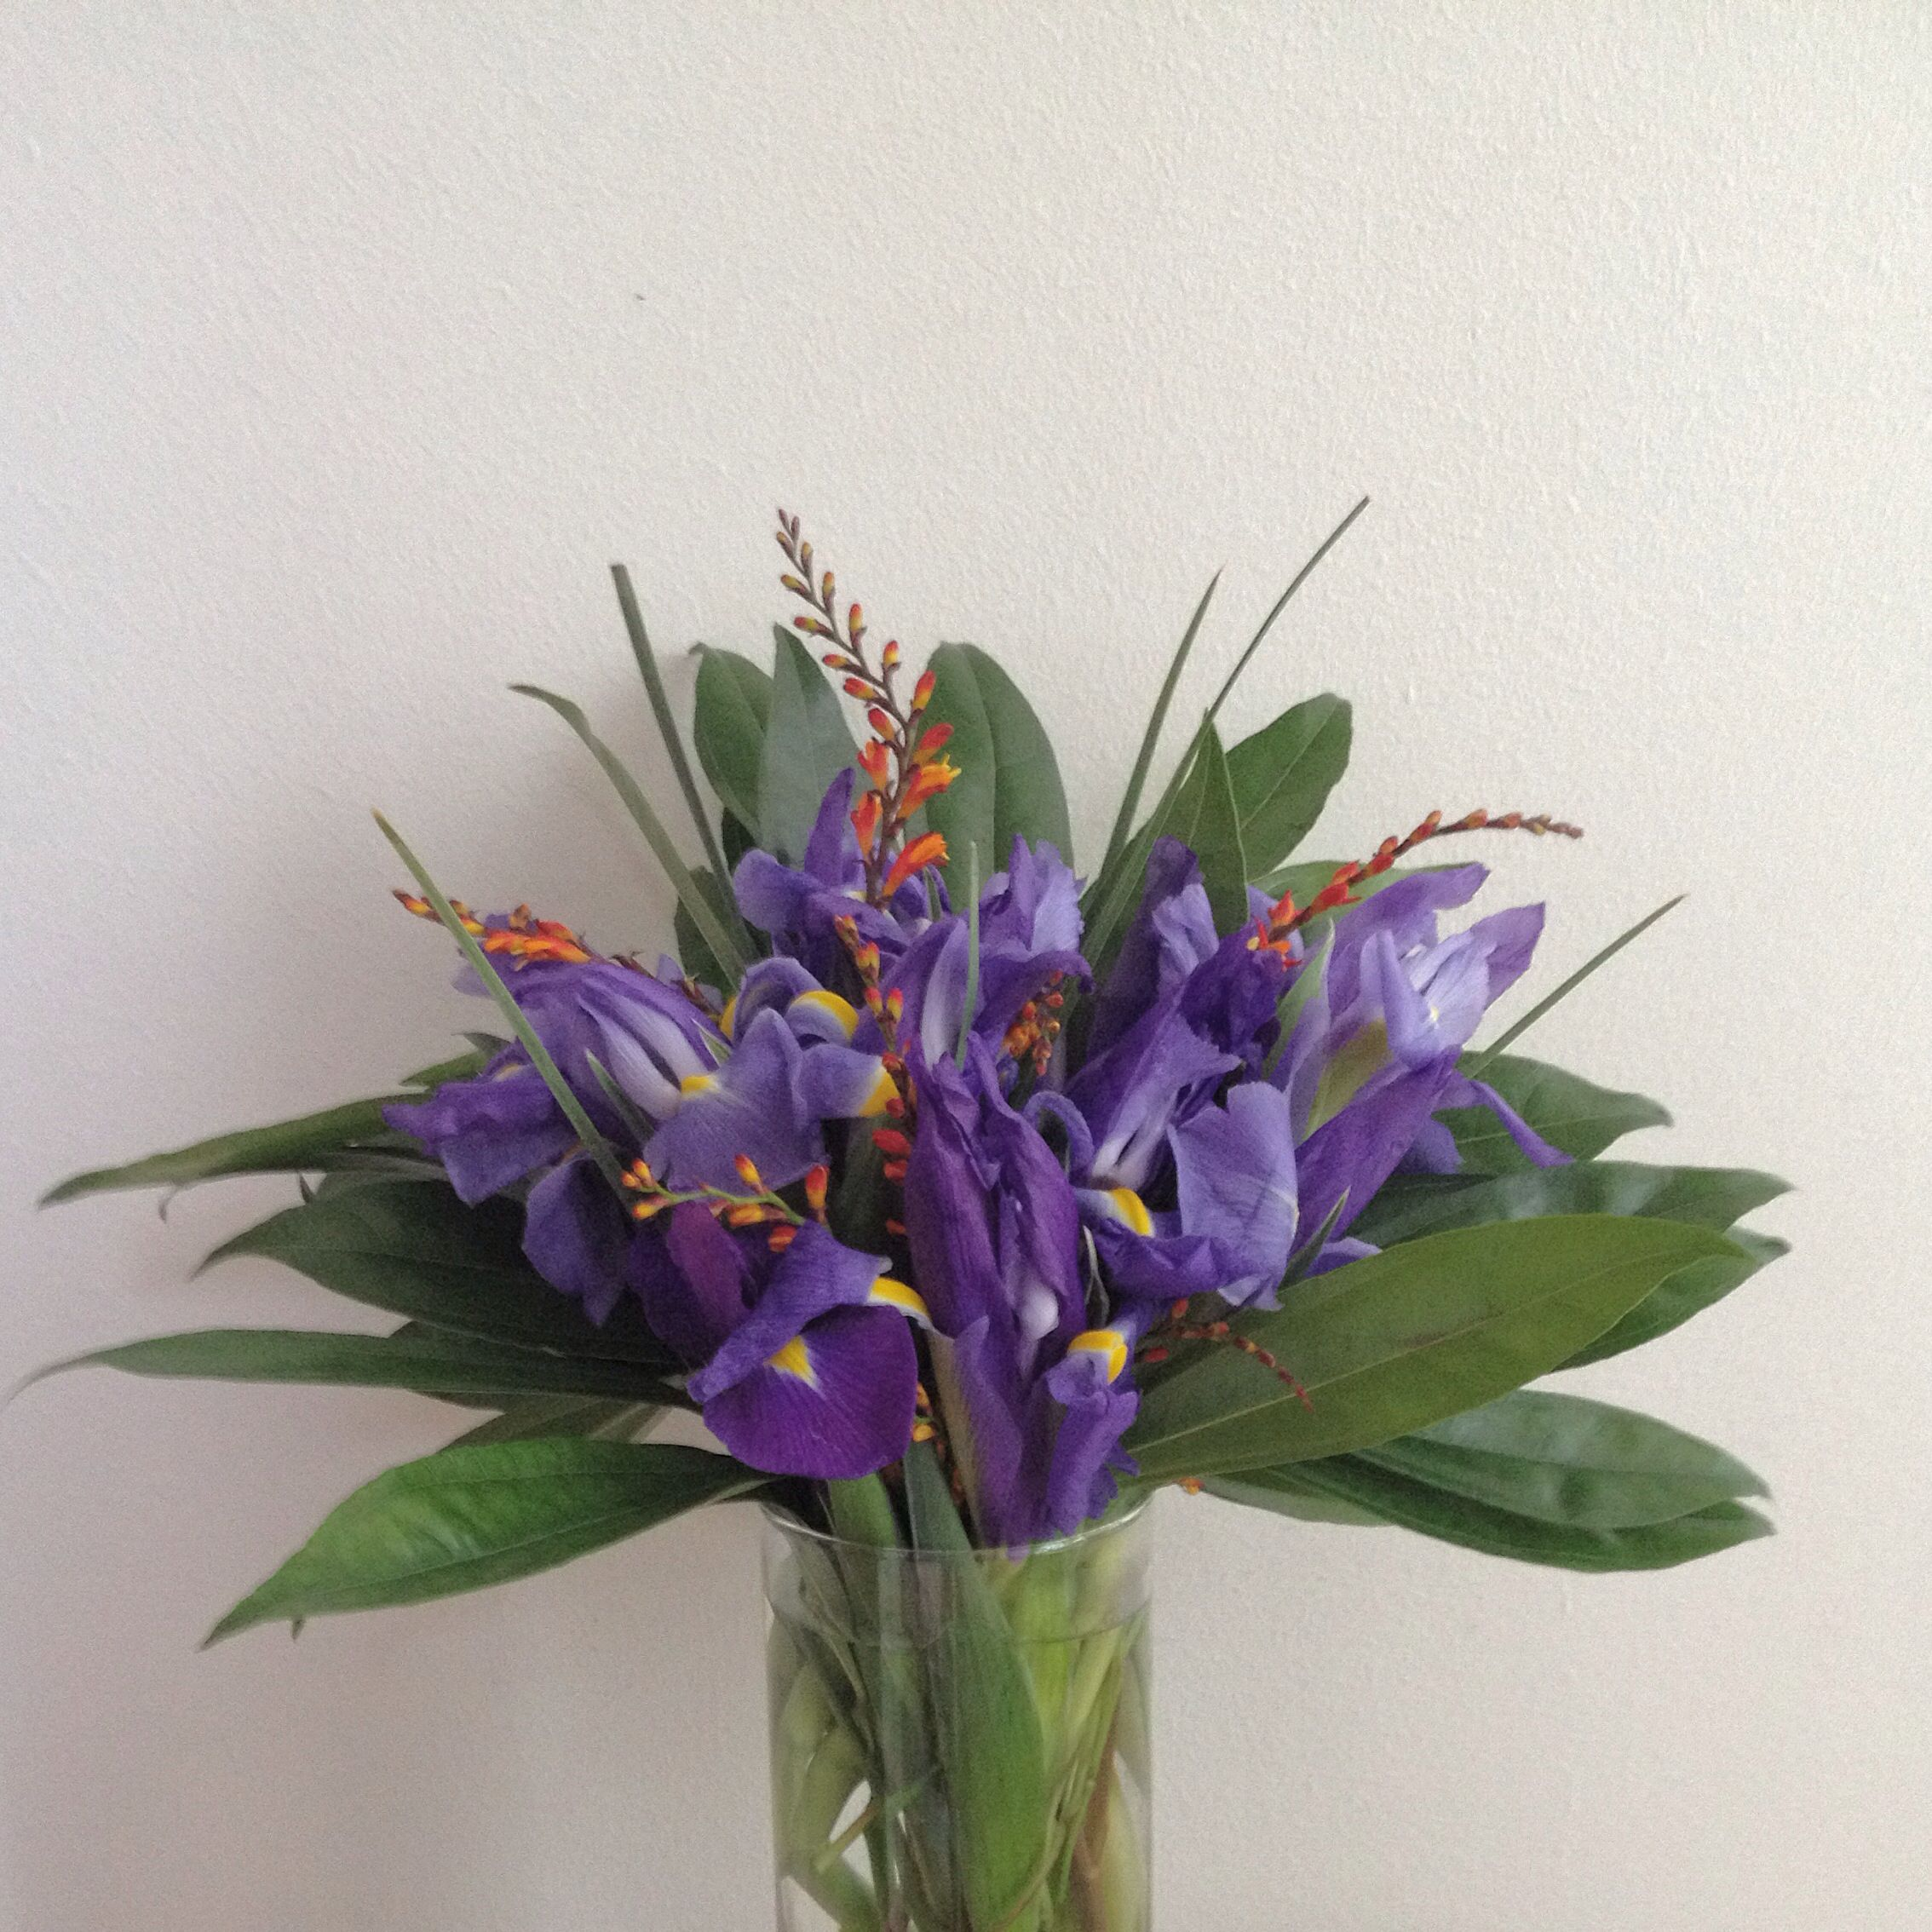 Simple Iris Floral Arrangement For A Registration Table Flora